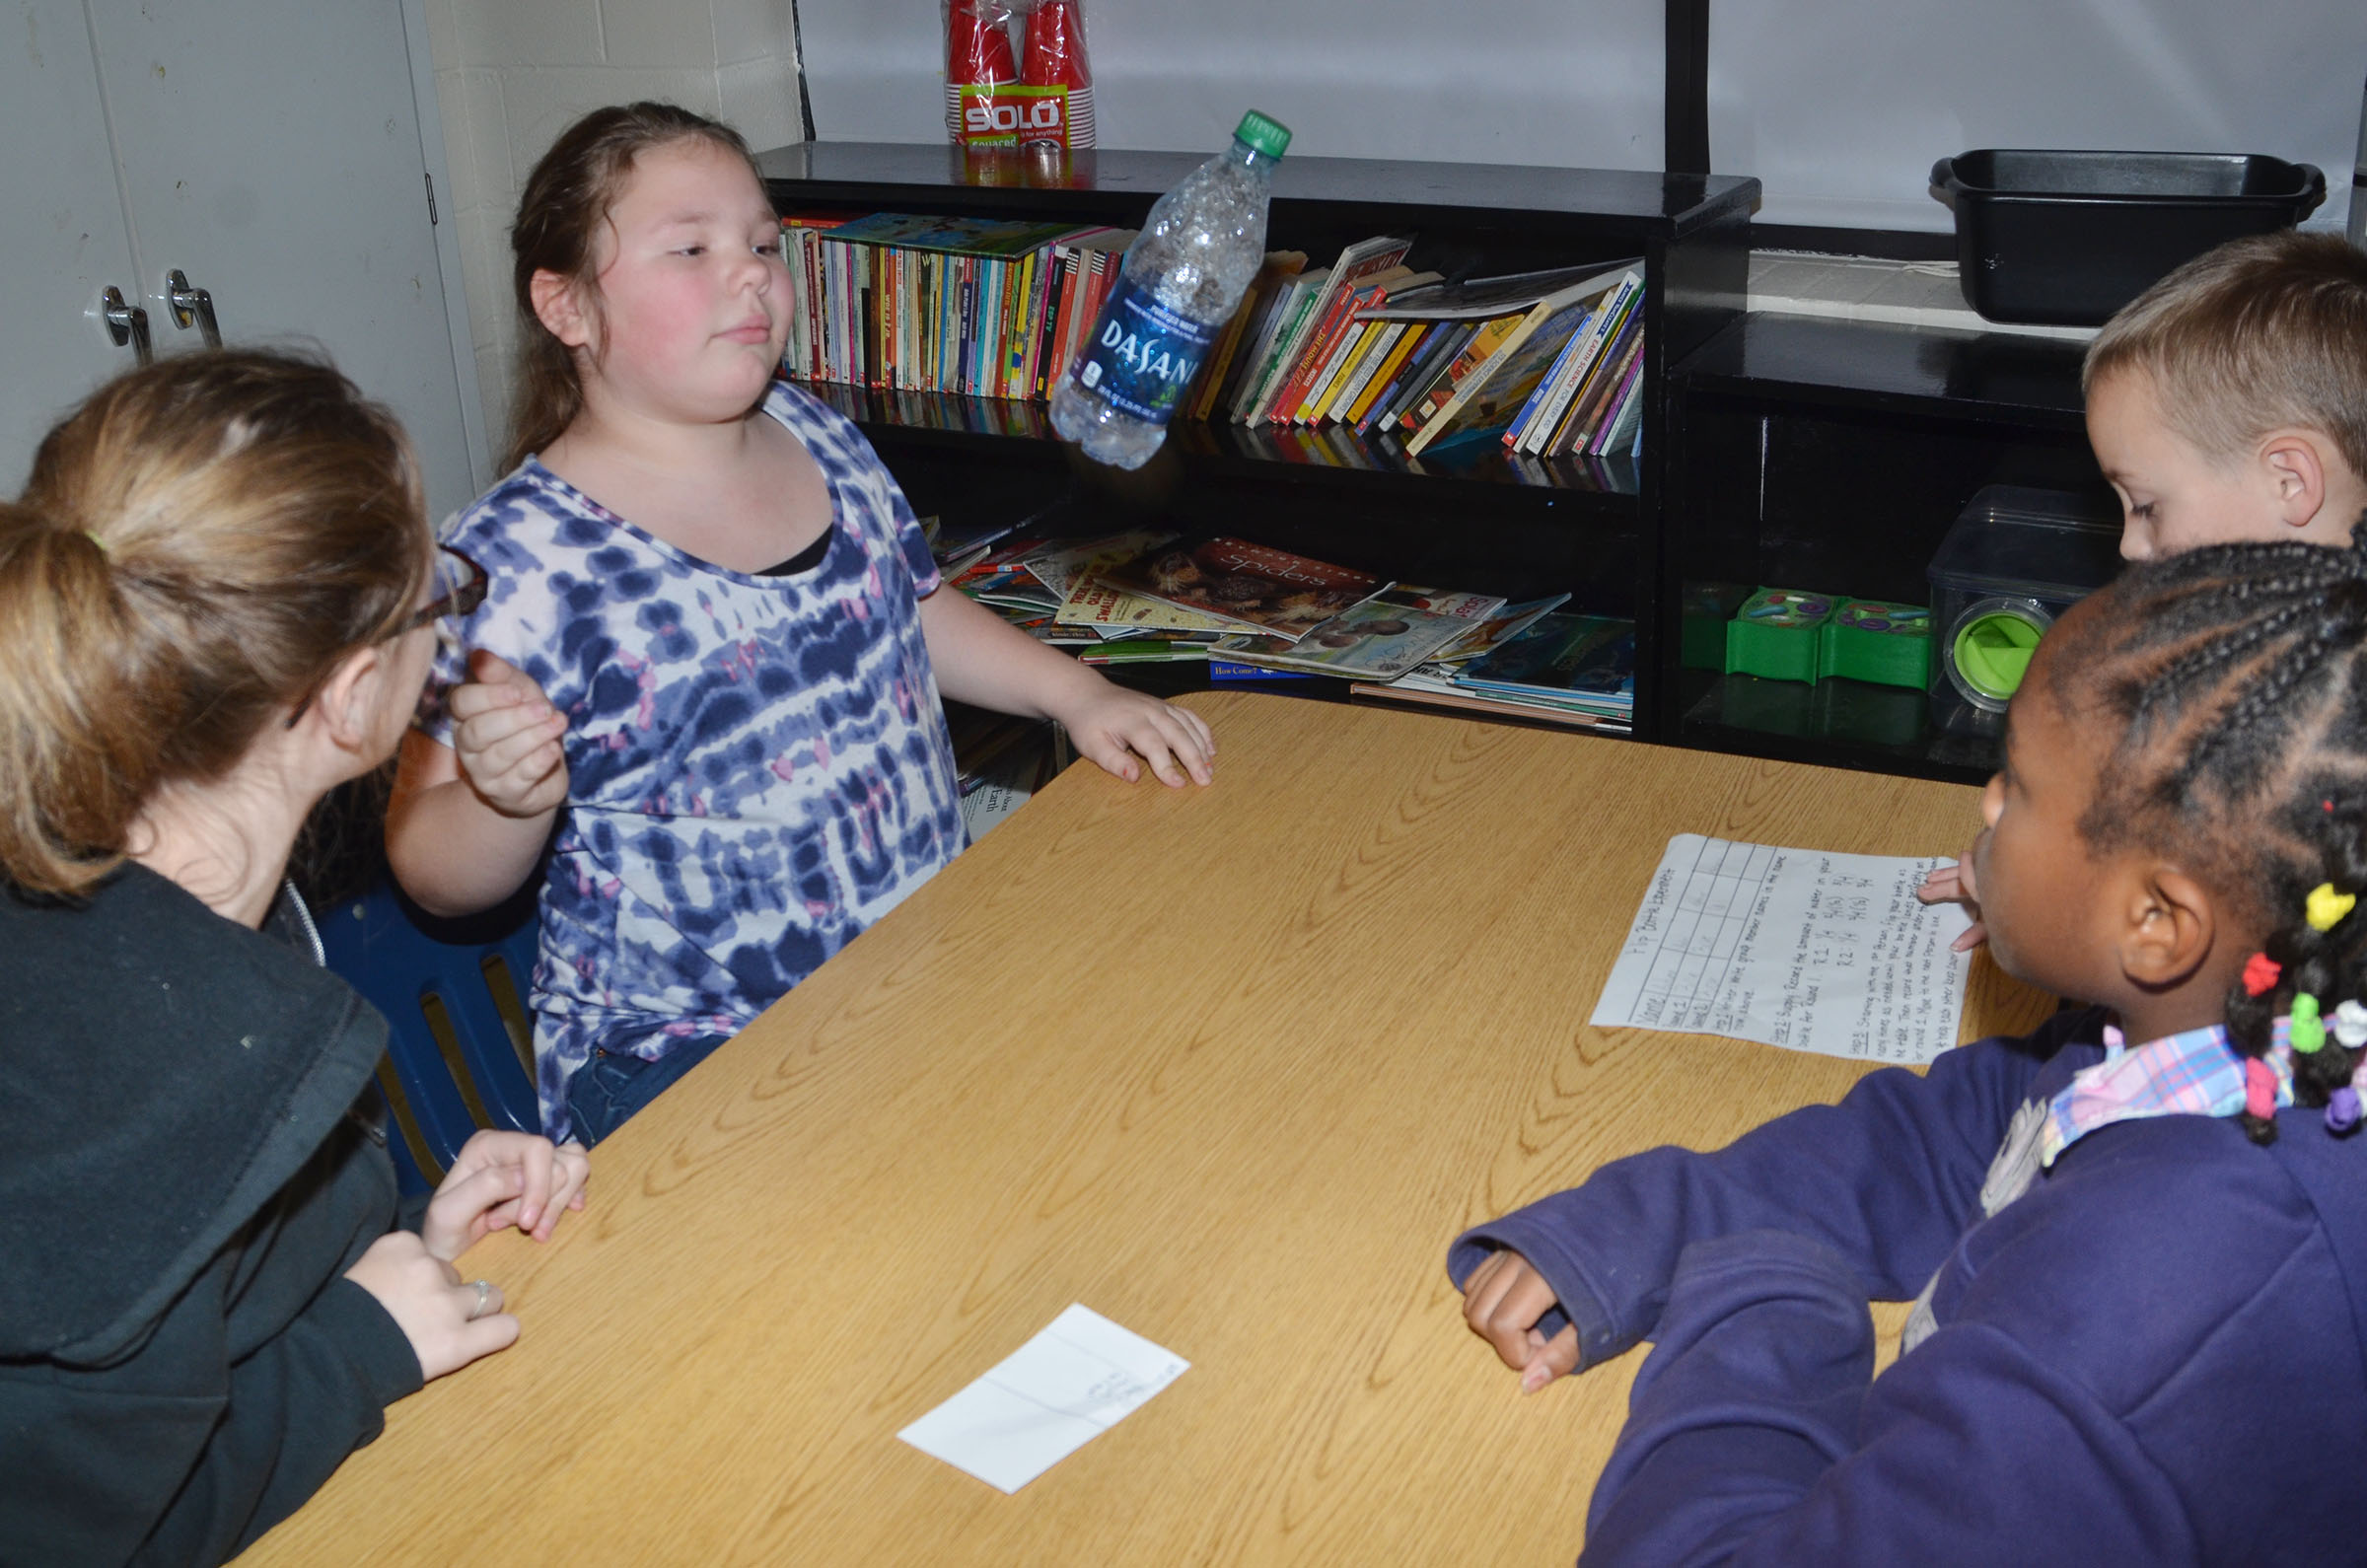 CMS fourth-grader Averi Perkins flips her water bottle as her groupmates watch.